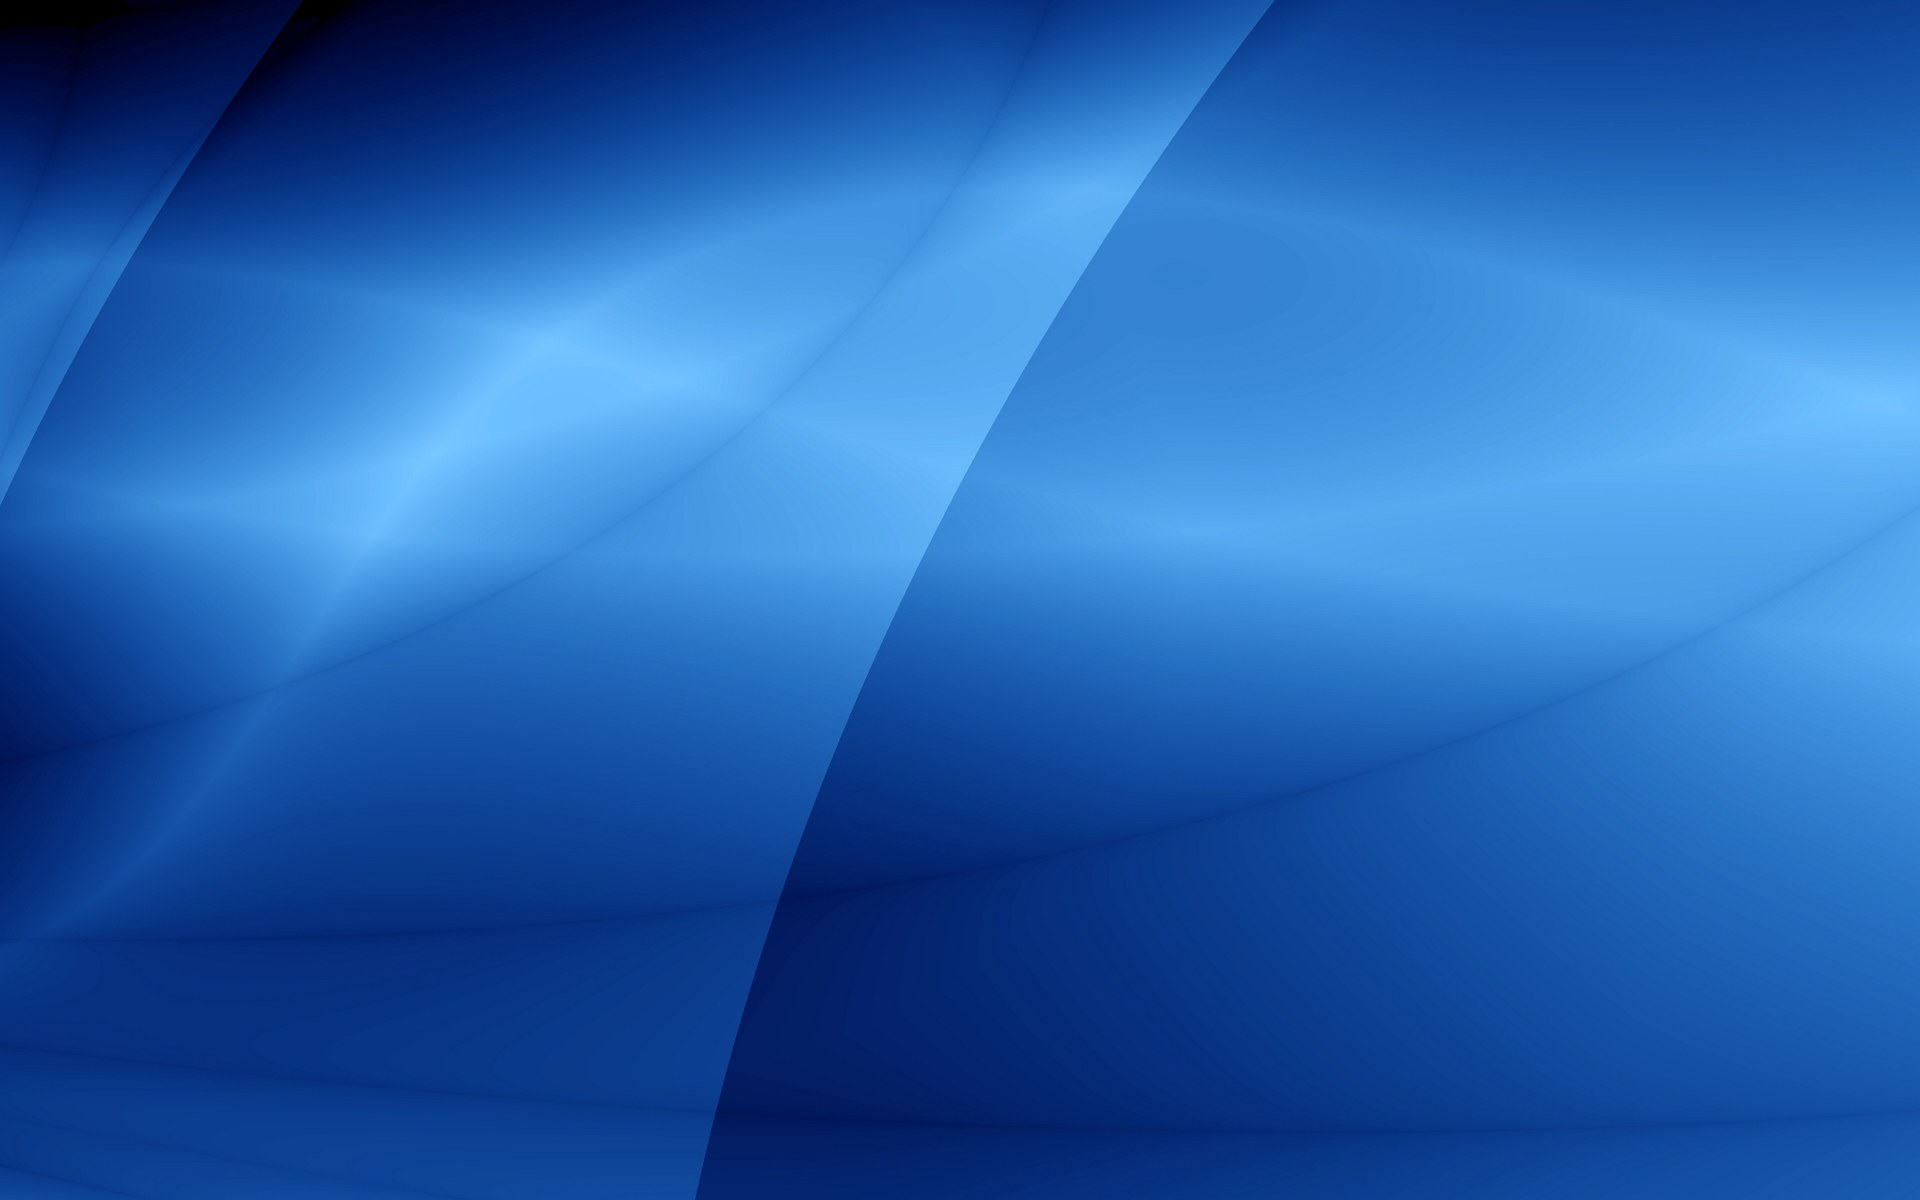 Blue Swirl Ipad Wallpaper Background And Theme: 69 4K Blue Wallpaper Backgrounds That Will Give Your